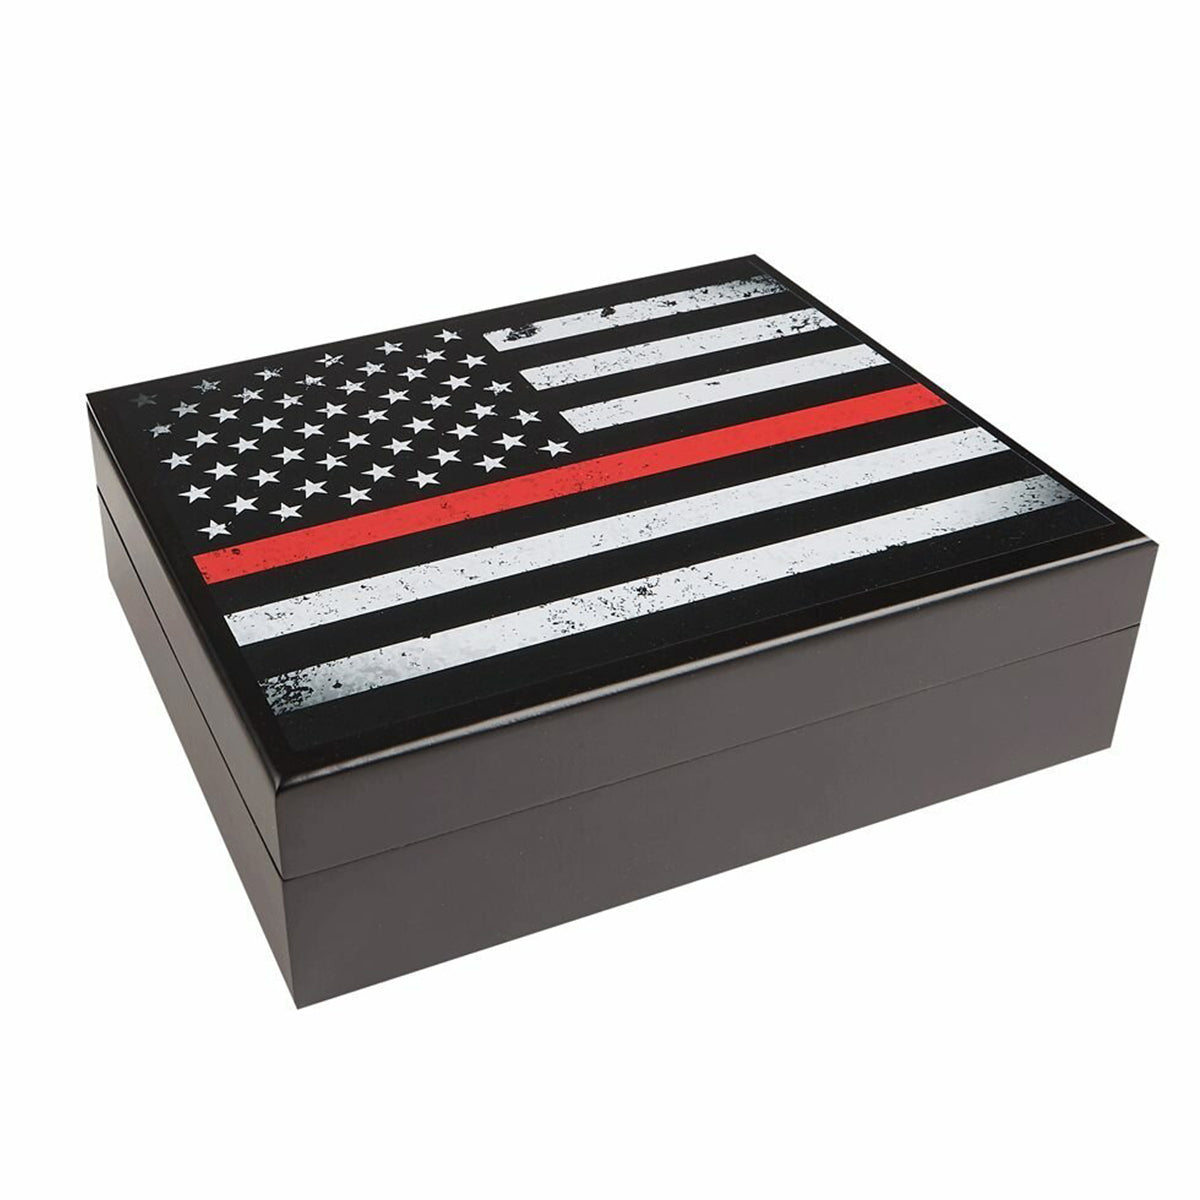 NEW Cigar Humidor USA Flag Red Print for 20 Cigars